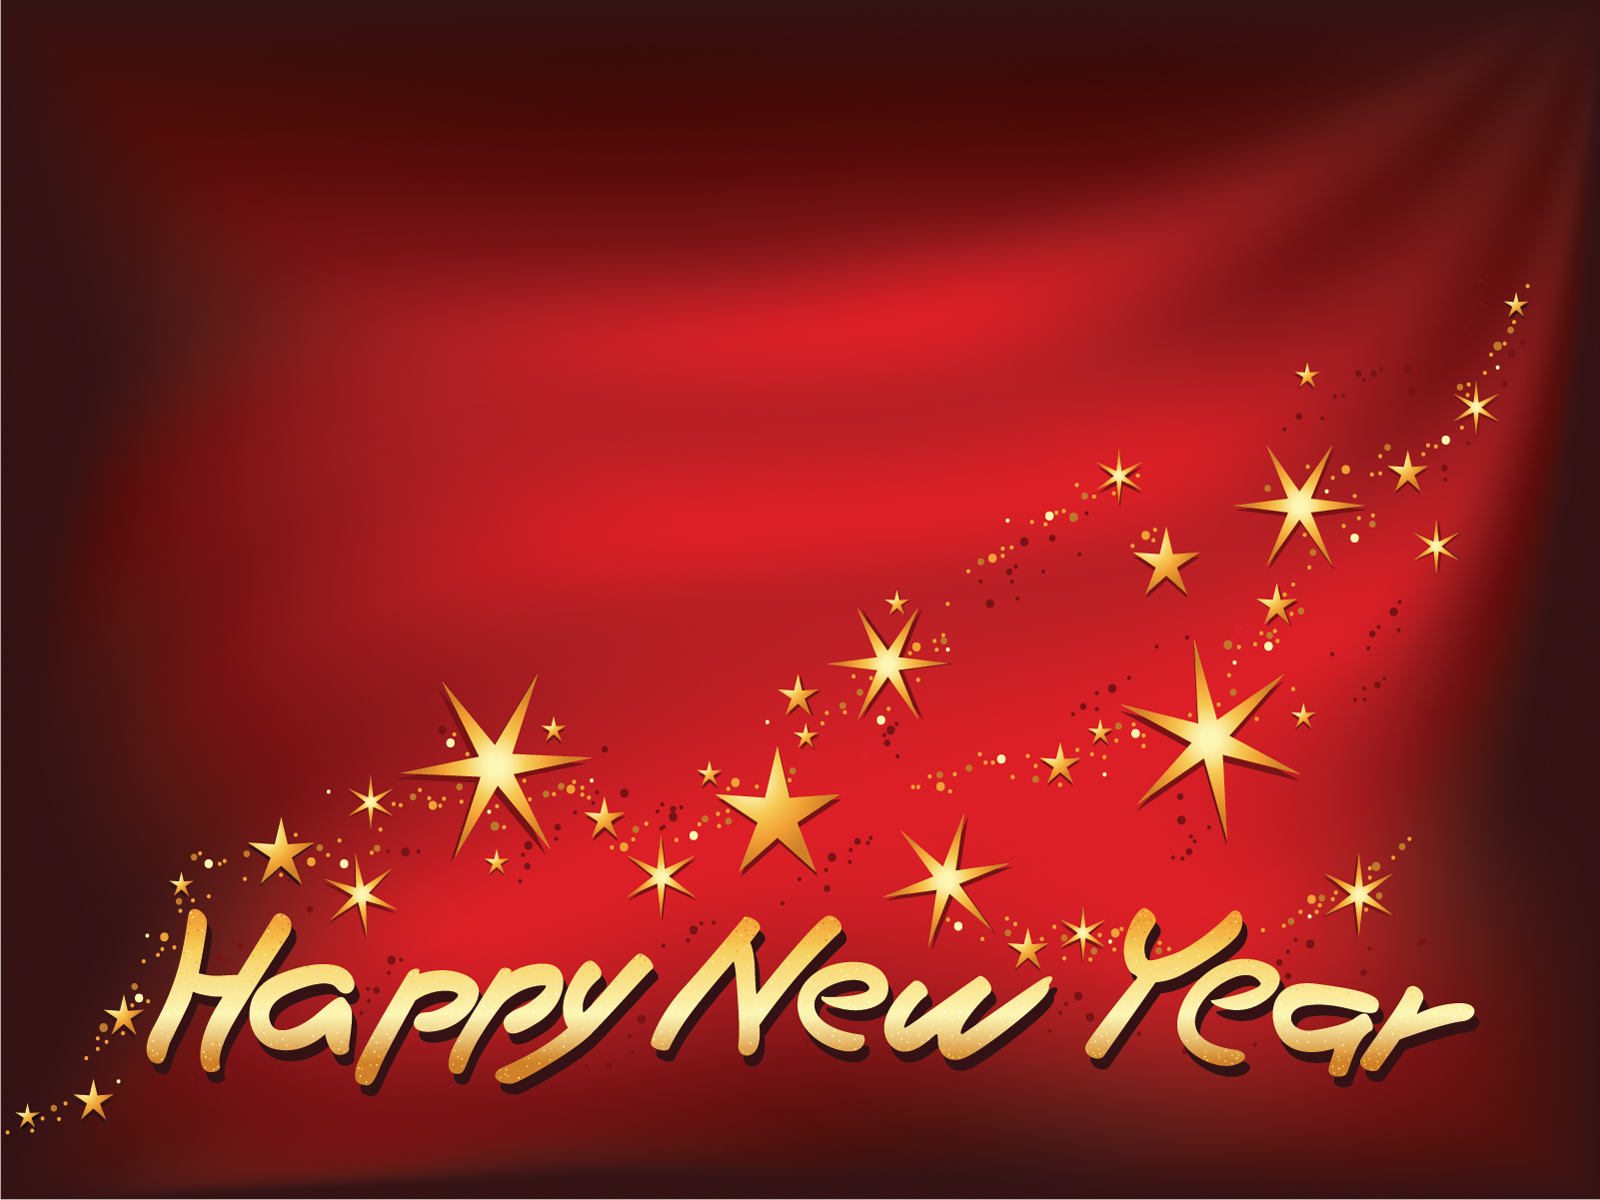 happy new year star theme wishes hd wallpaper